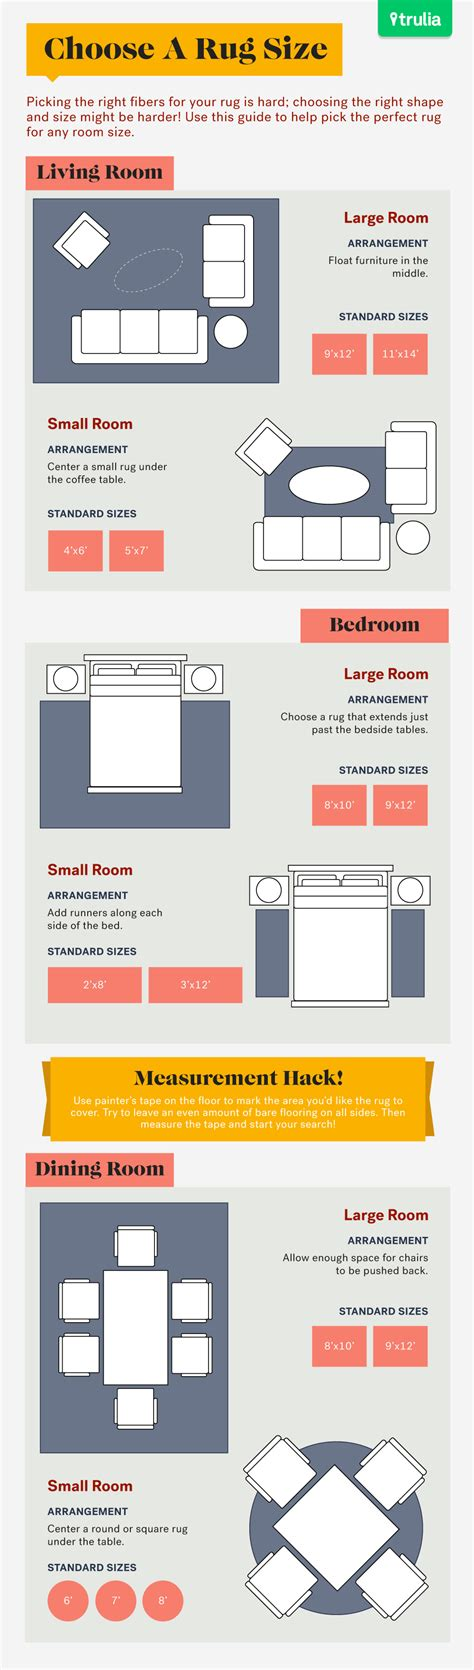 Area Rug Size by Area Rug Sizes Tips For Buying At Home Trulia